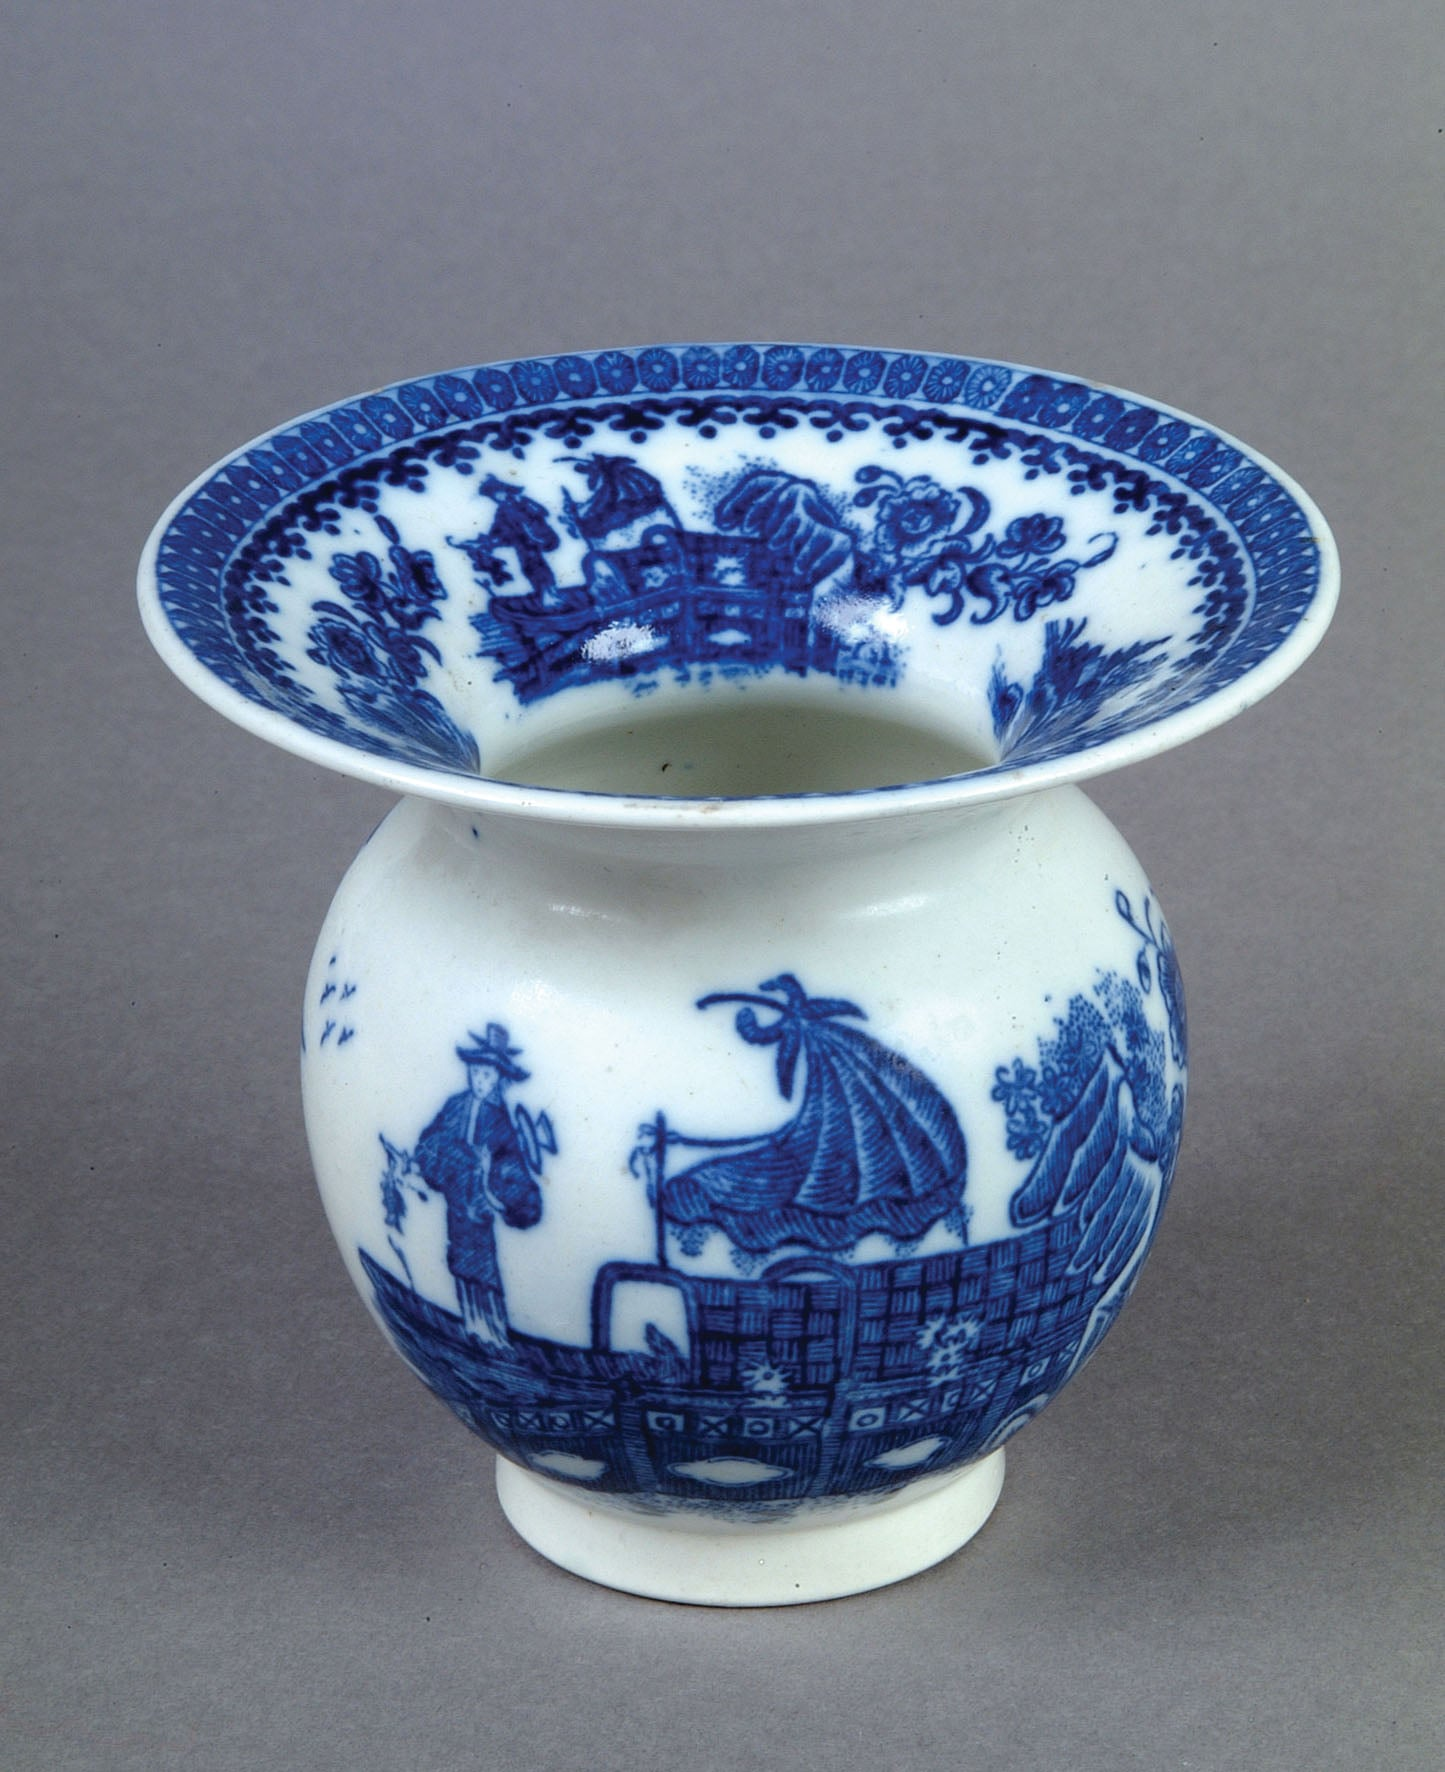 Godden collection of Caughley porcelain